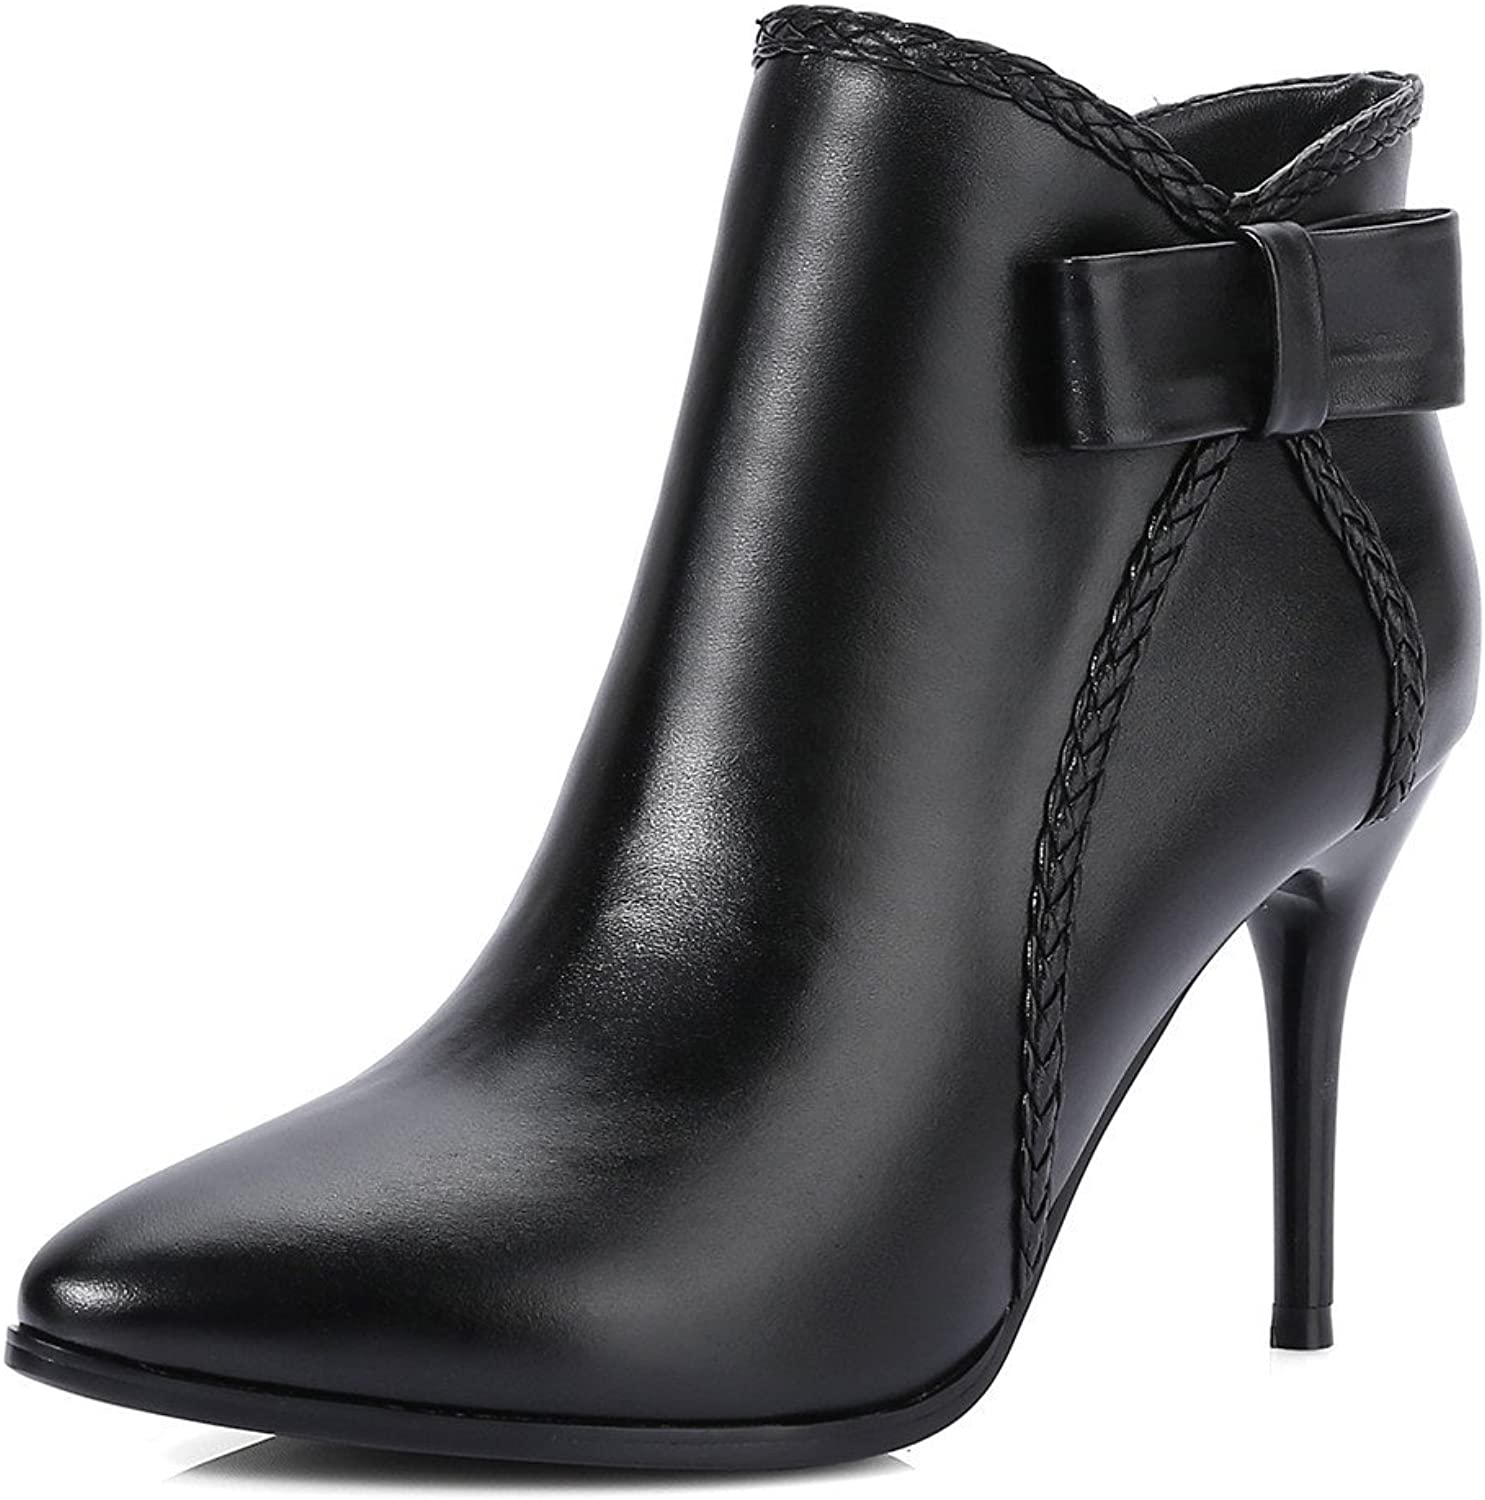 Nine Seven Genuine Leather Women's Pointed Toe Stiletto High Heel Elegant Fashion Handmade Dress Ankle Boot with Bow